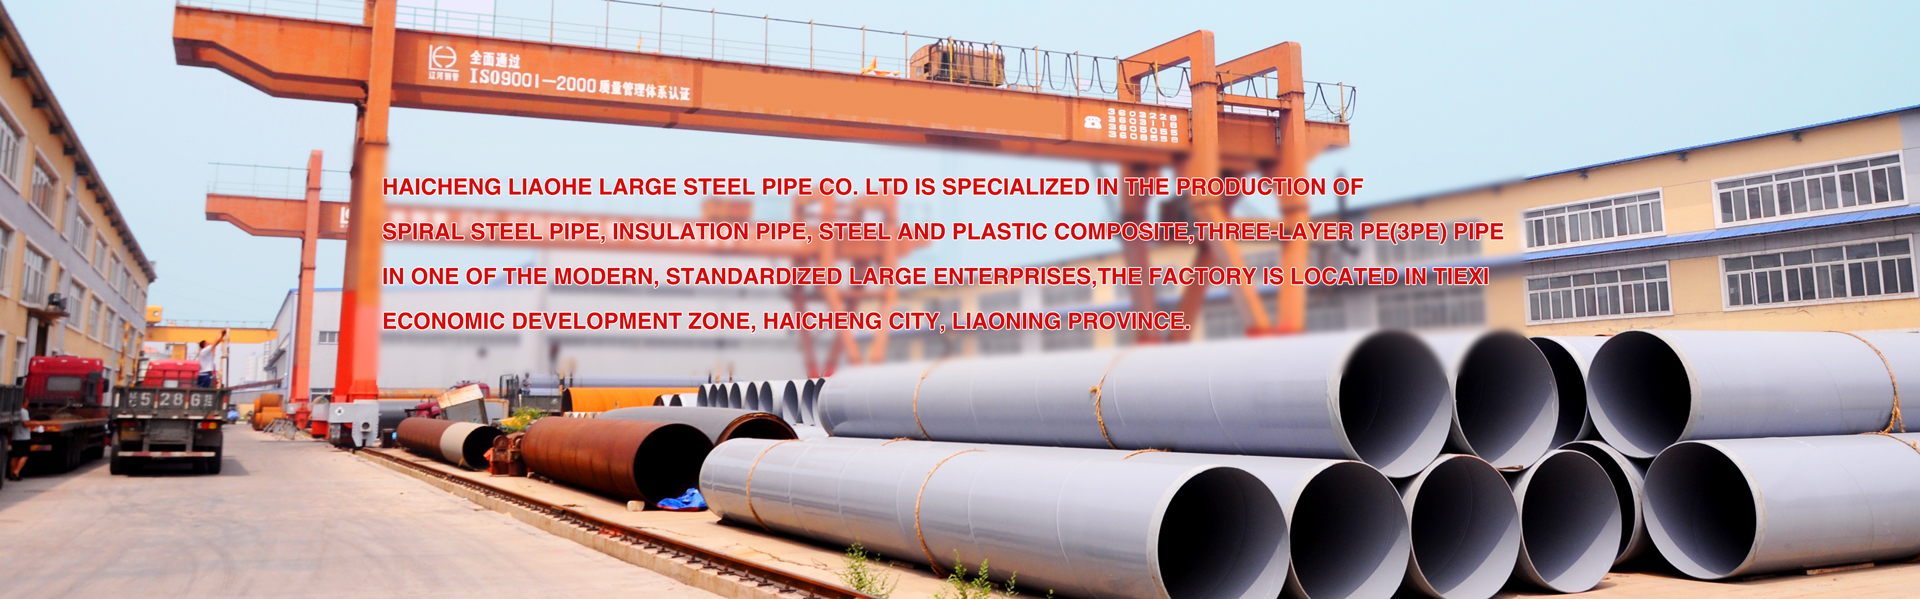 Double-sided submerged arc welding spiral steel pipe